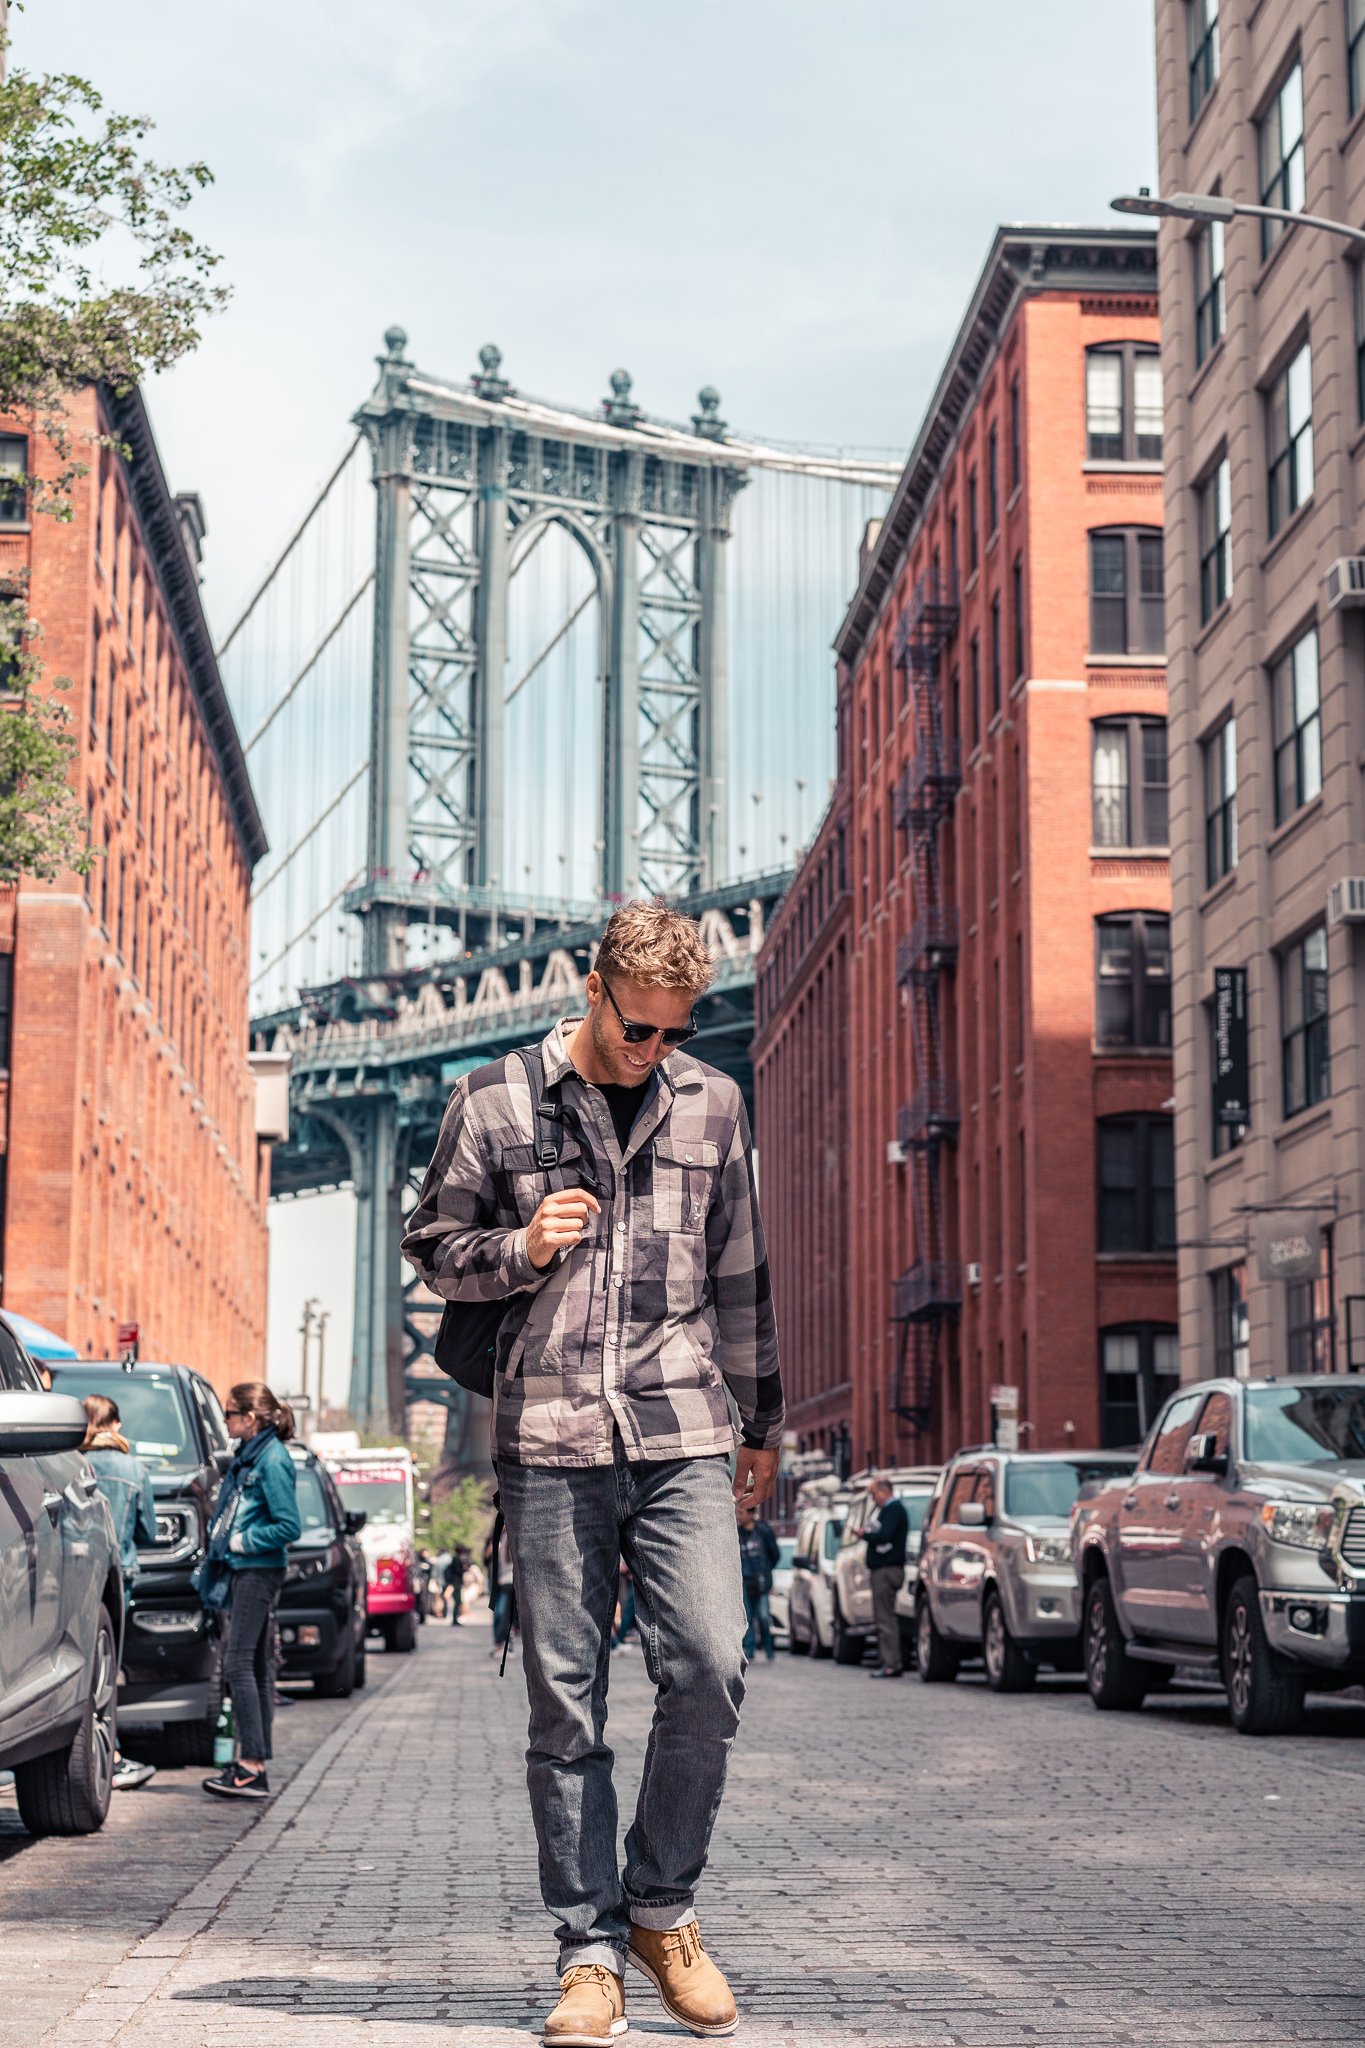 Dylan striking a pose in front of the iconic view of the Manhattan Bridge in Dumbo.